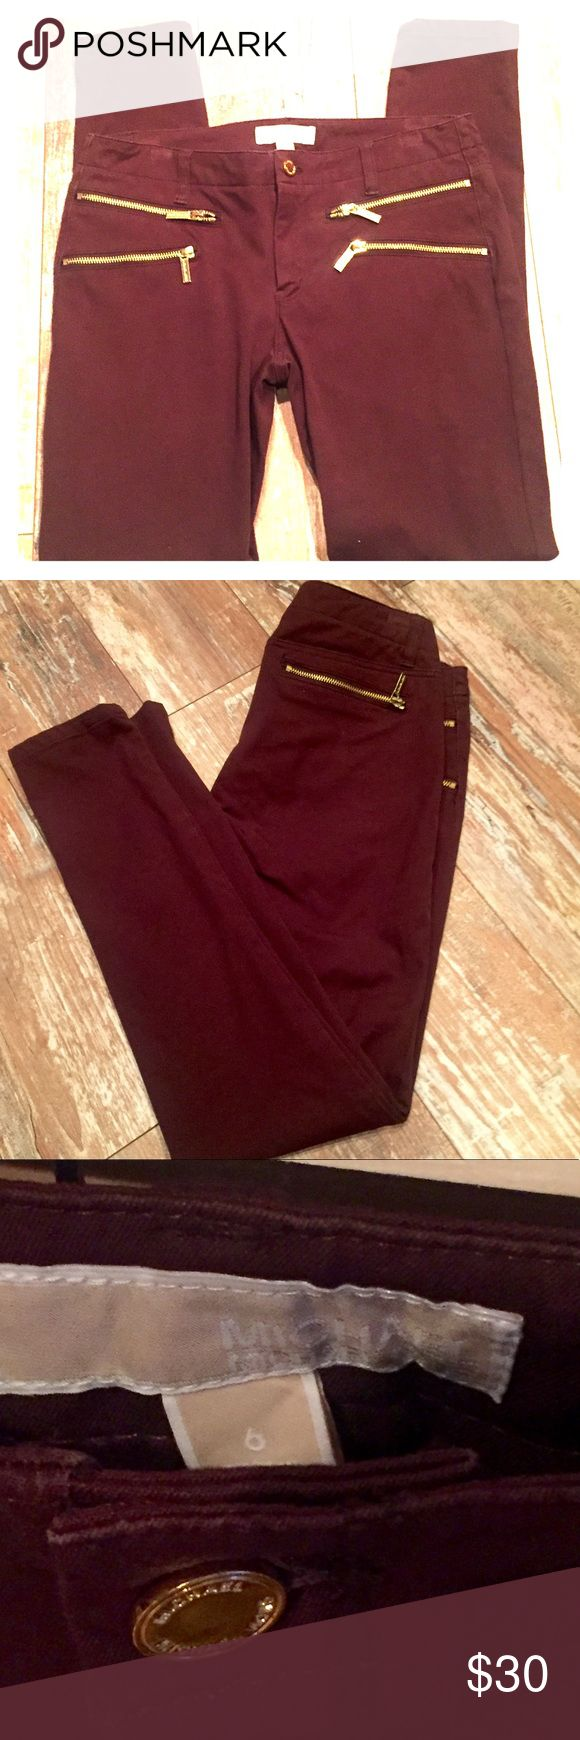 "Micheal Kors skinny leg Micheal Kors skinny leg pants. Worn one time. Too short. Thought I could pull it off but nope. The length is 30"", waist 15 1/2"", rise 8"". Very flattering to figure and stay good form Michael Kors Other"